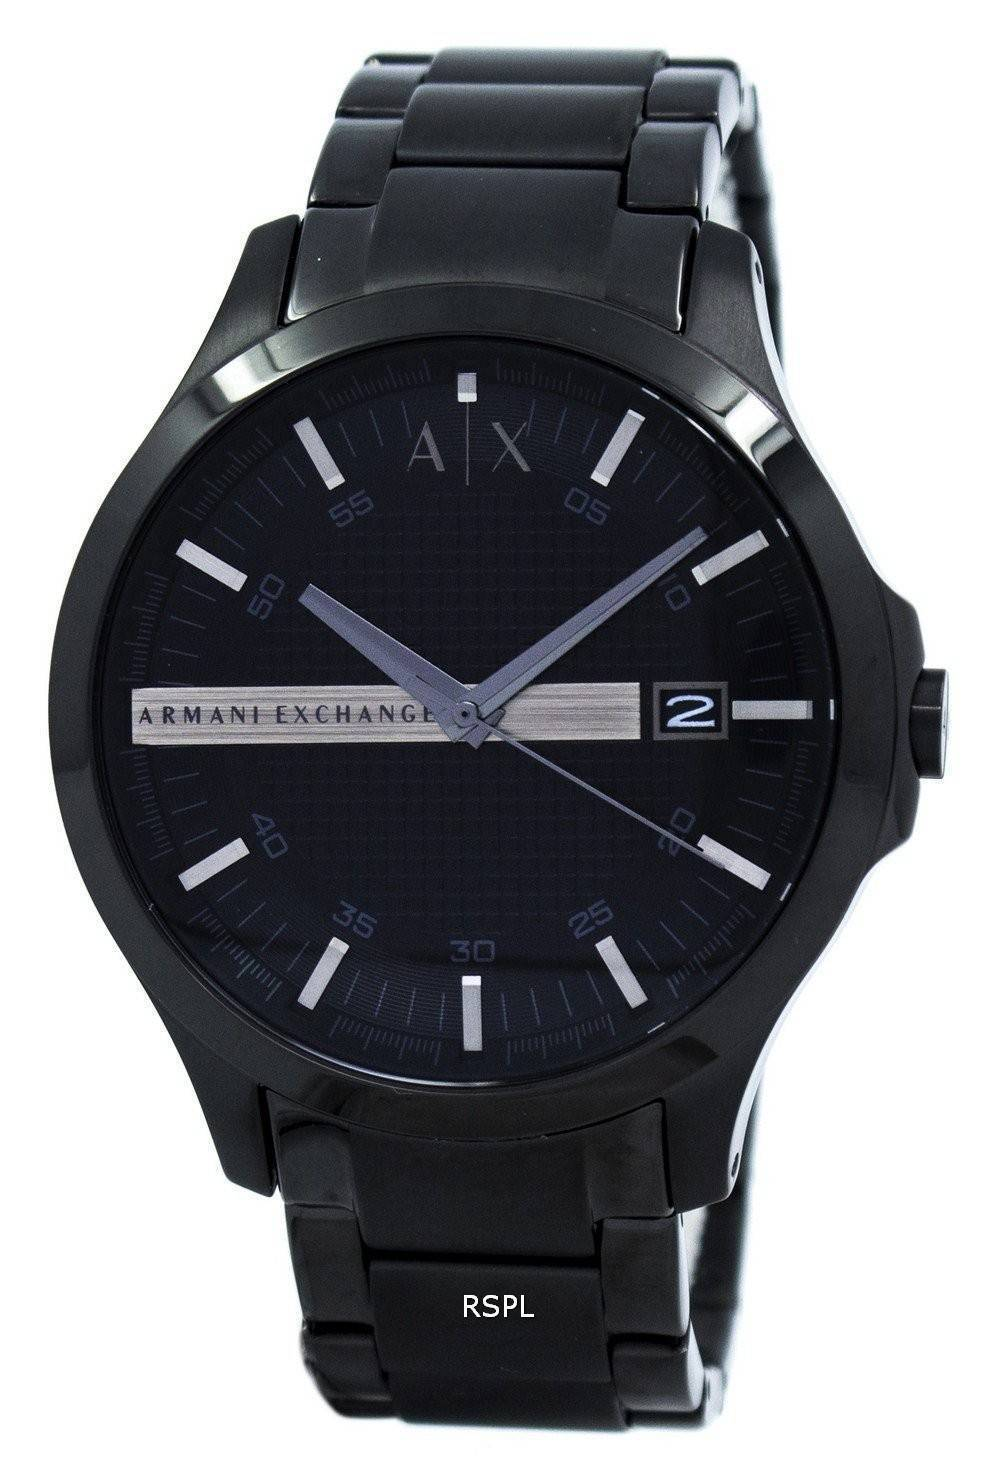 5f3c2efe45f Armani Exchange Black Dial Stainless Steel AX2104 Mens Watch Singapore